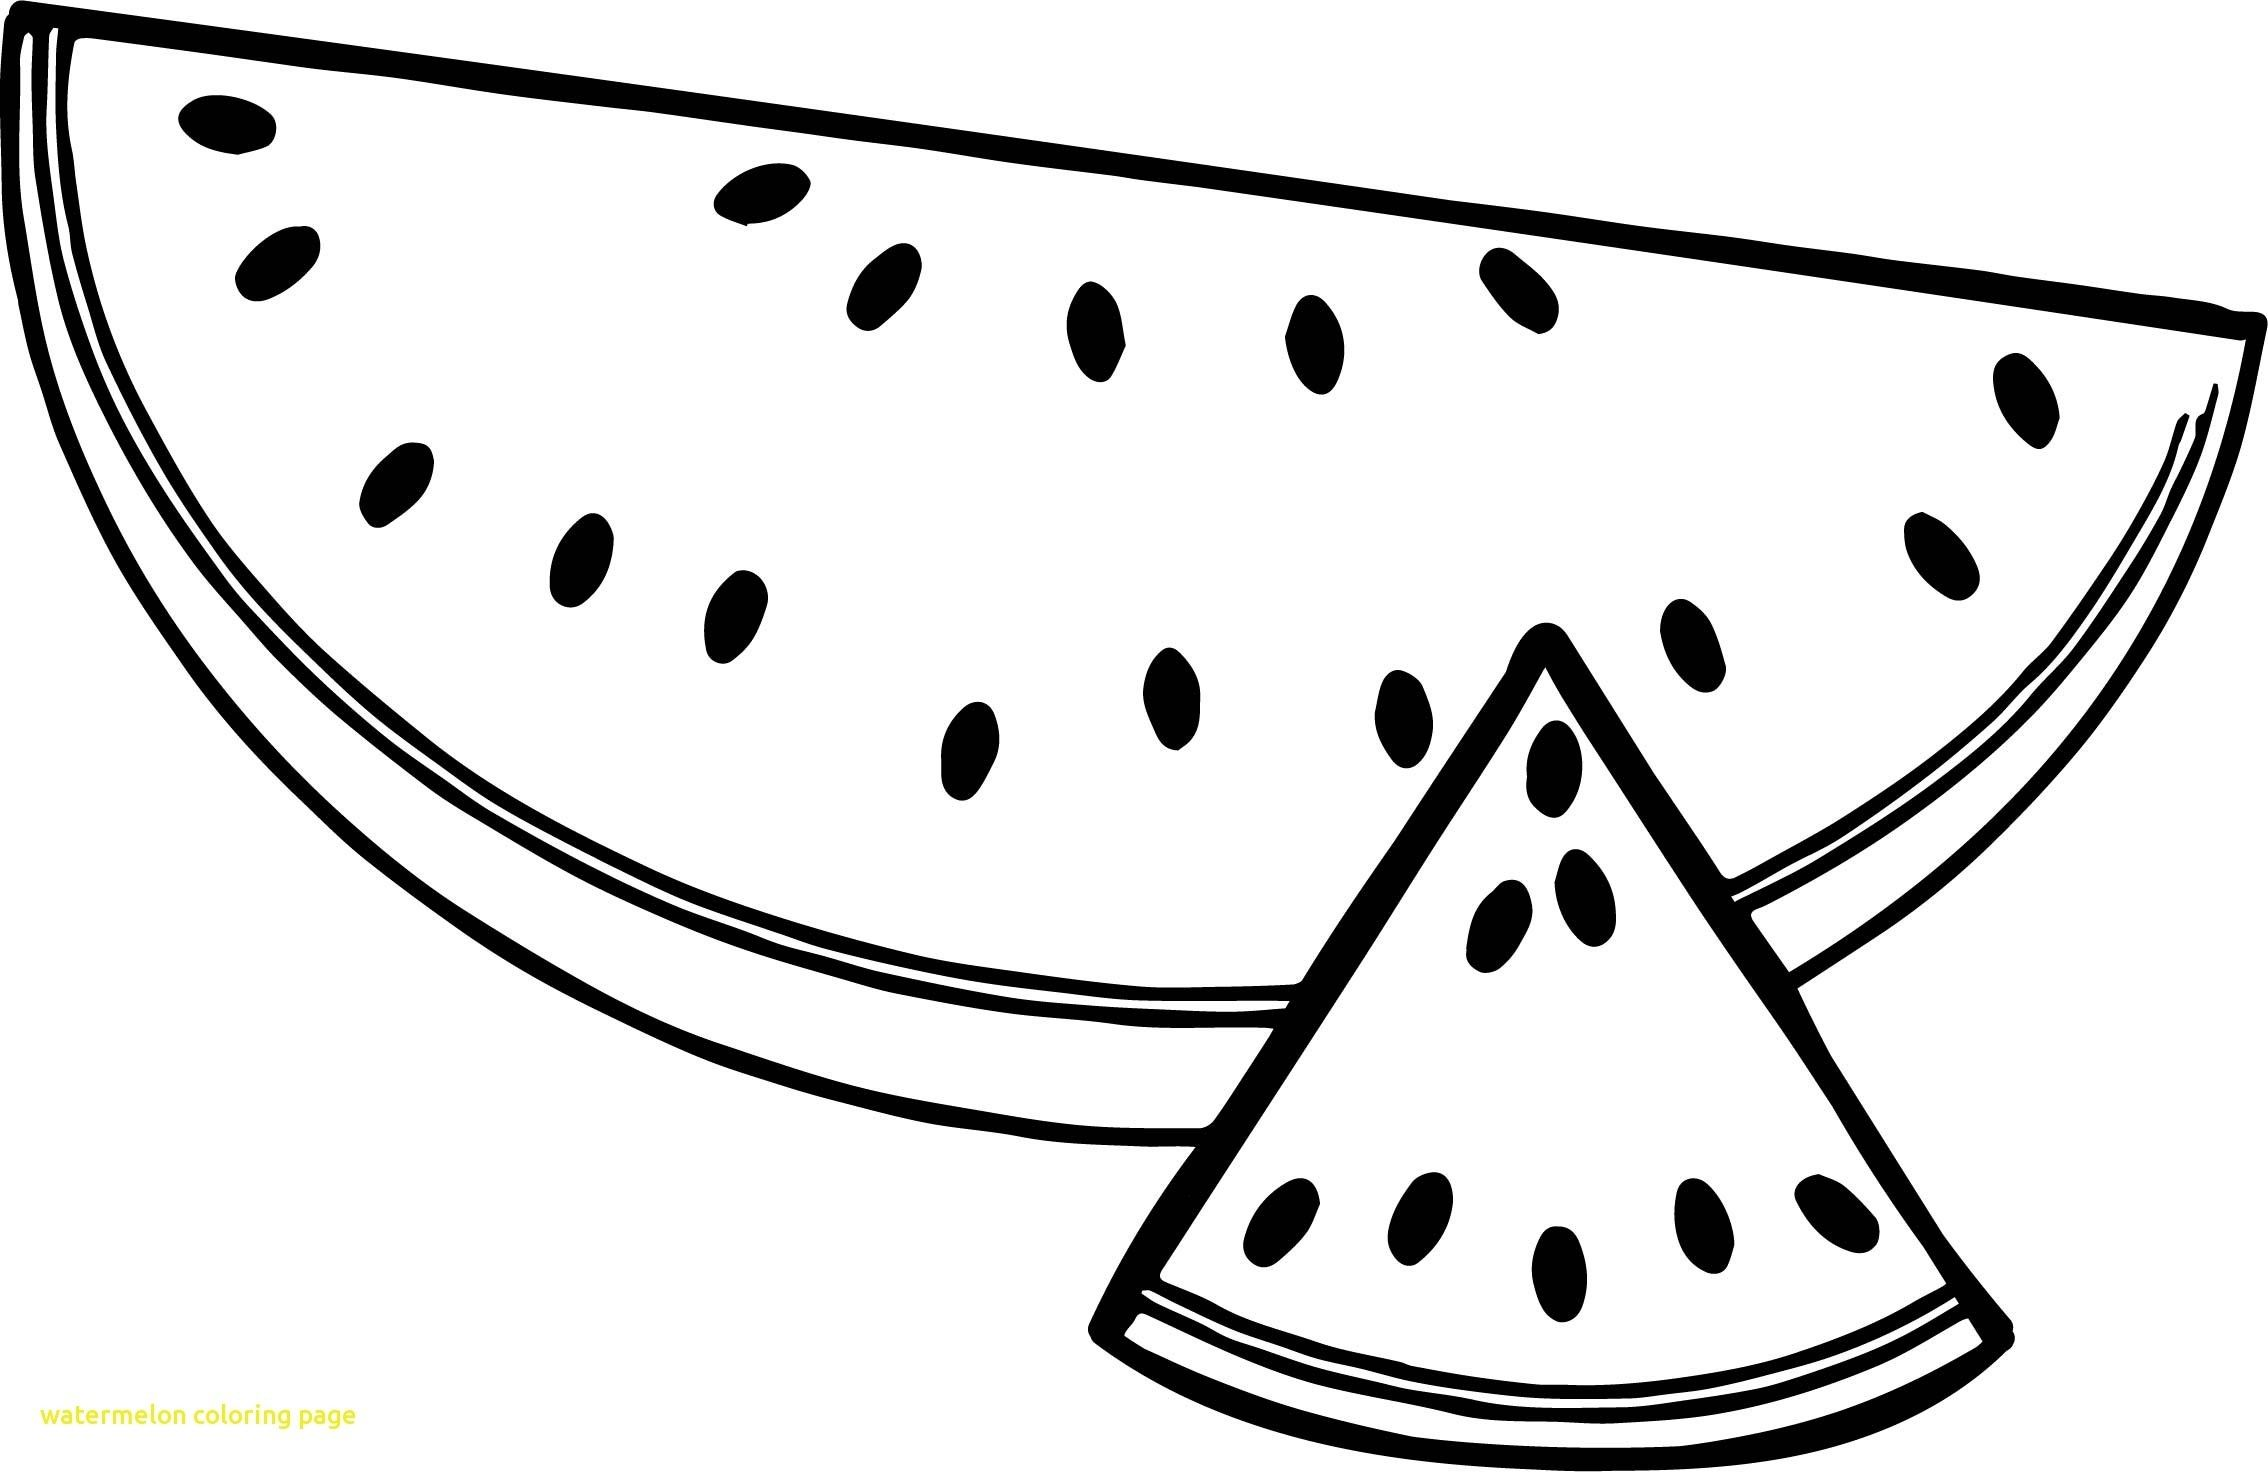 Awesome Watermelons Coloring Pages For Kids Fruits